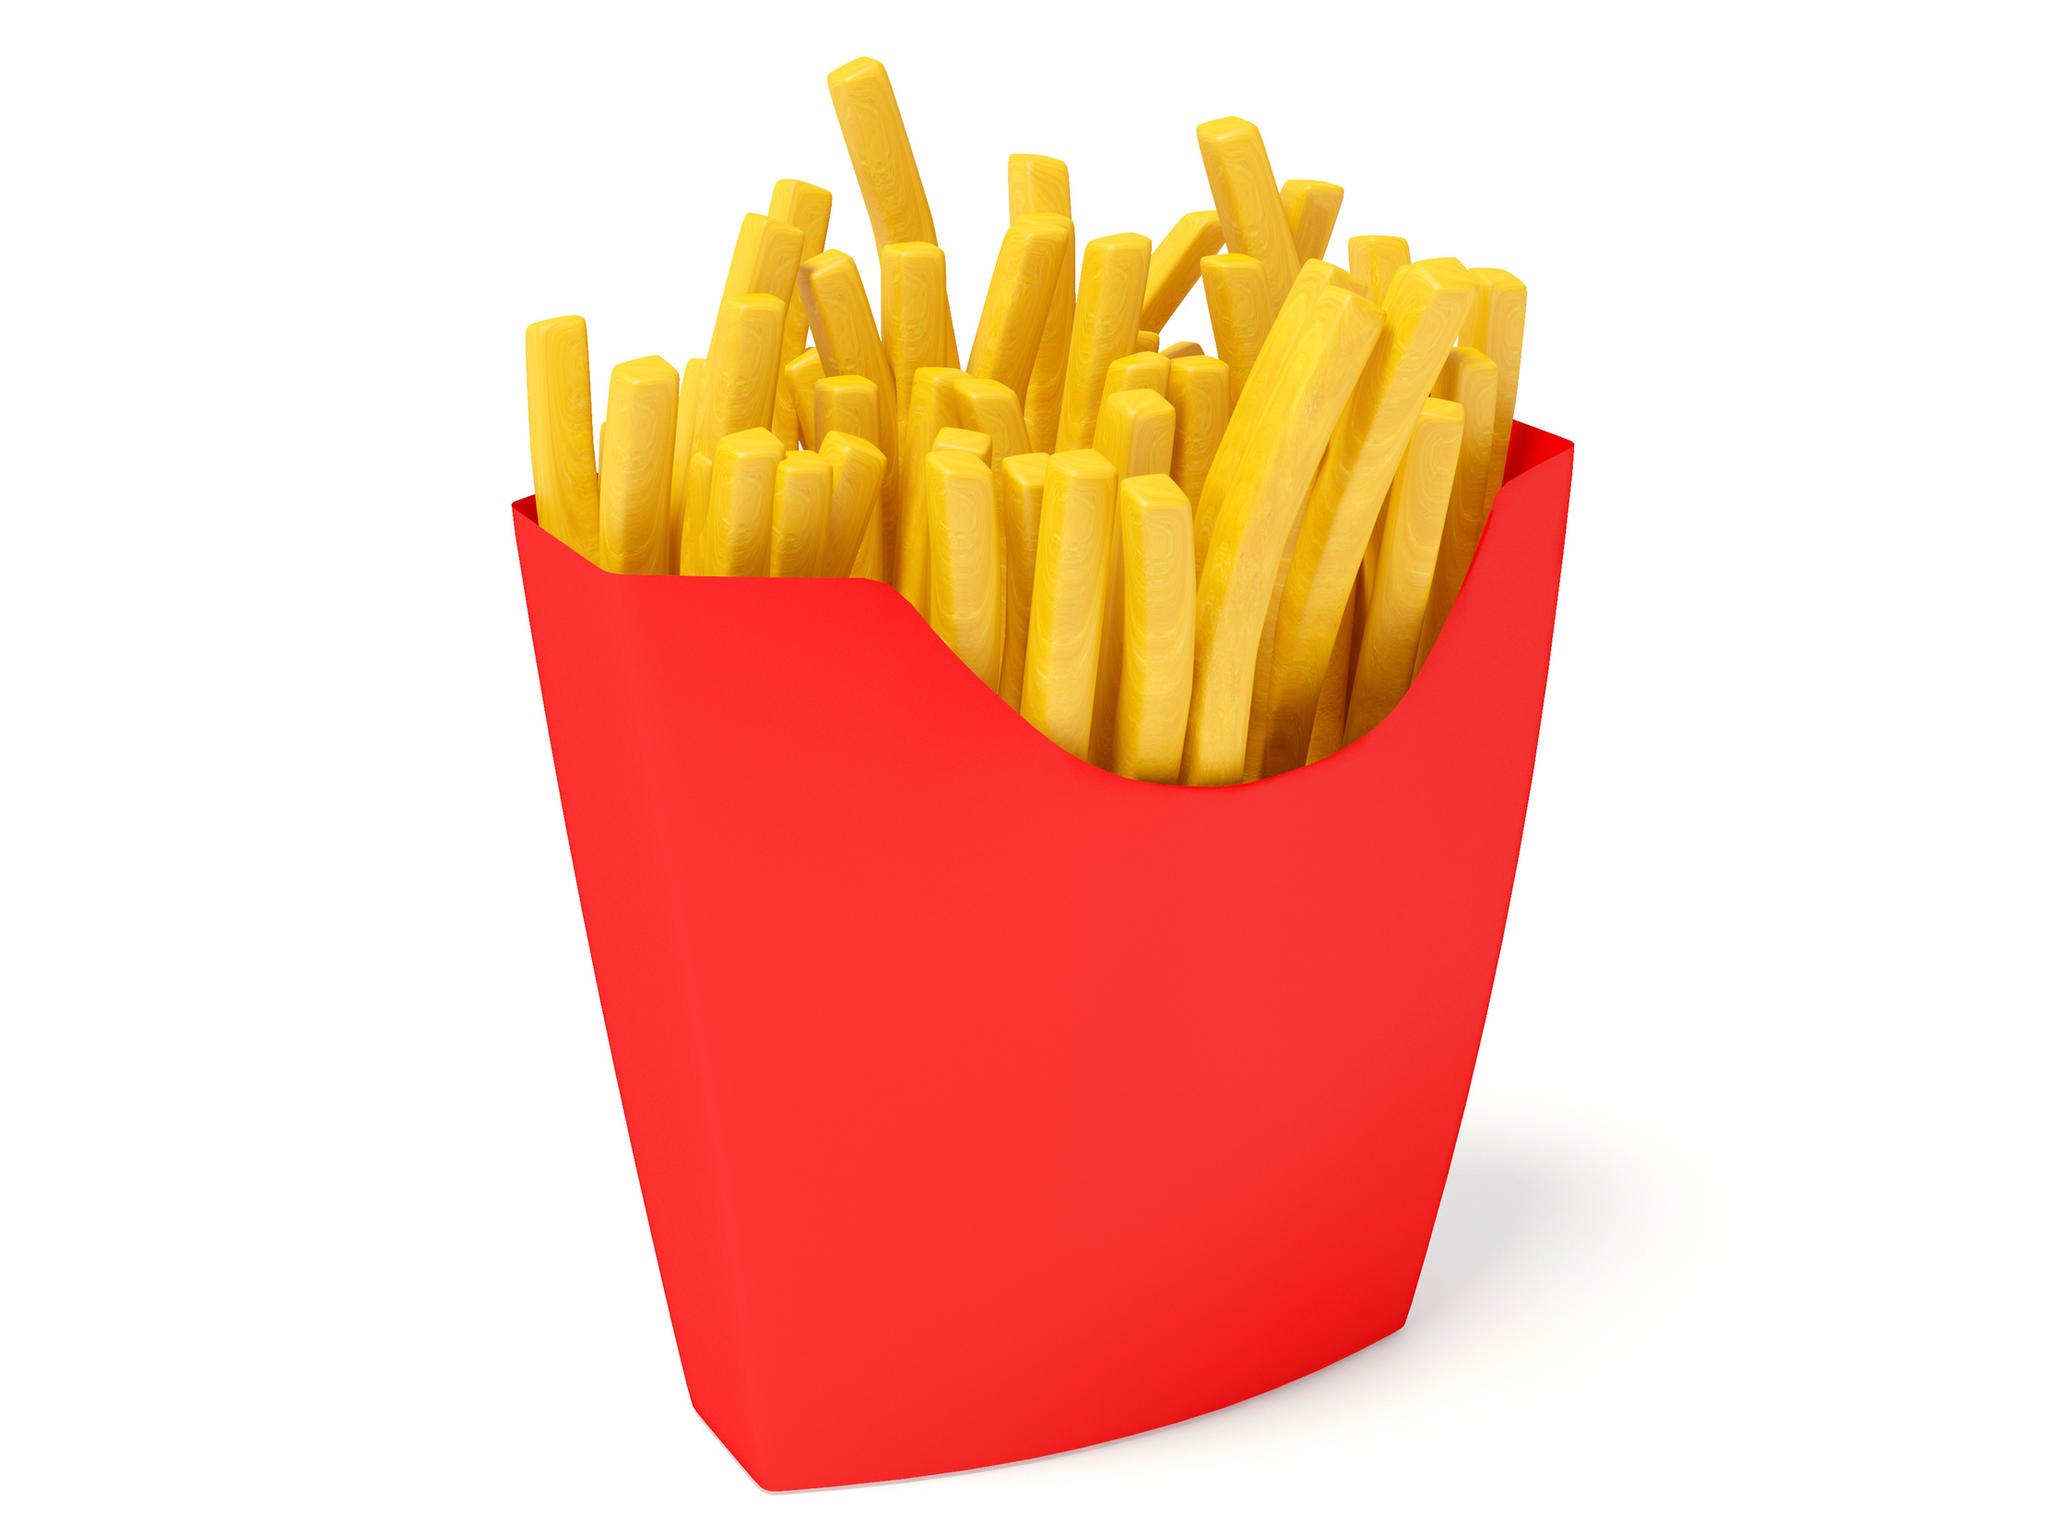 French Fries clipart French The Fries Clipart Fries